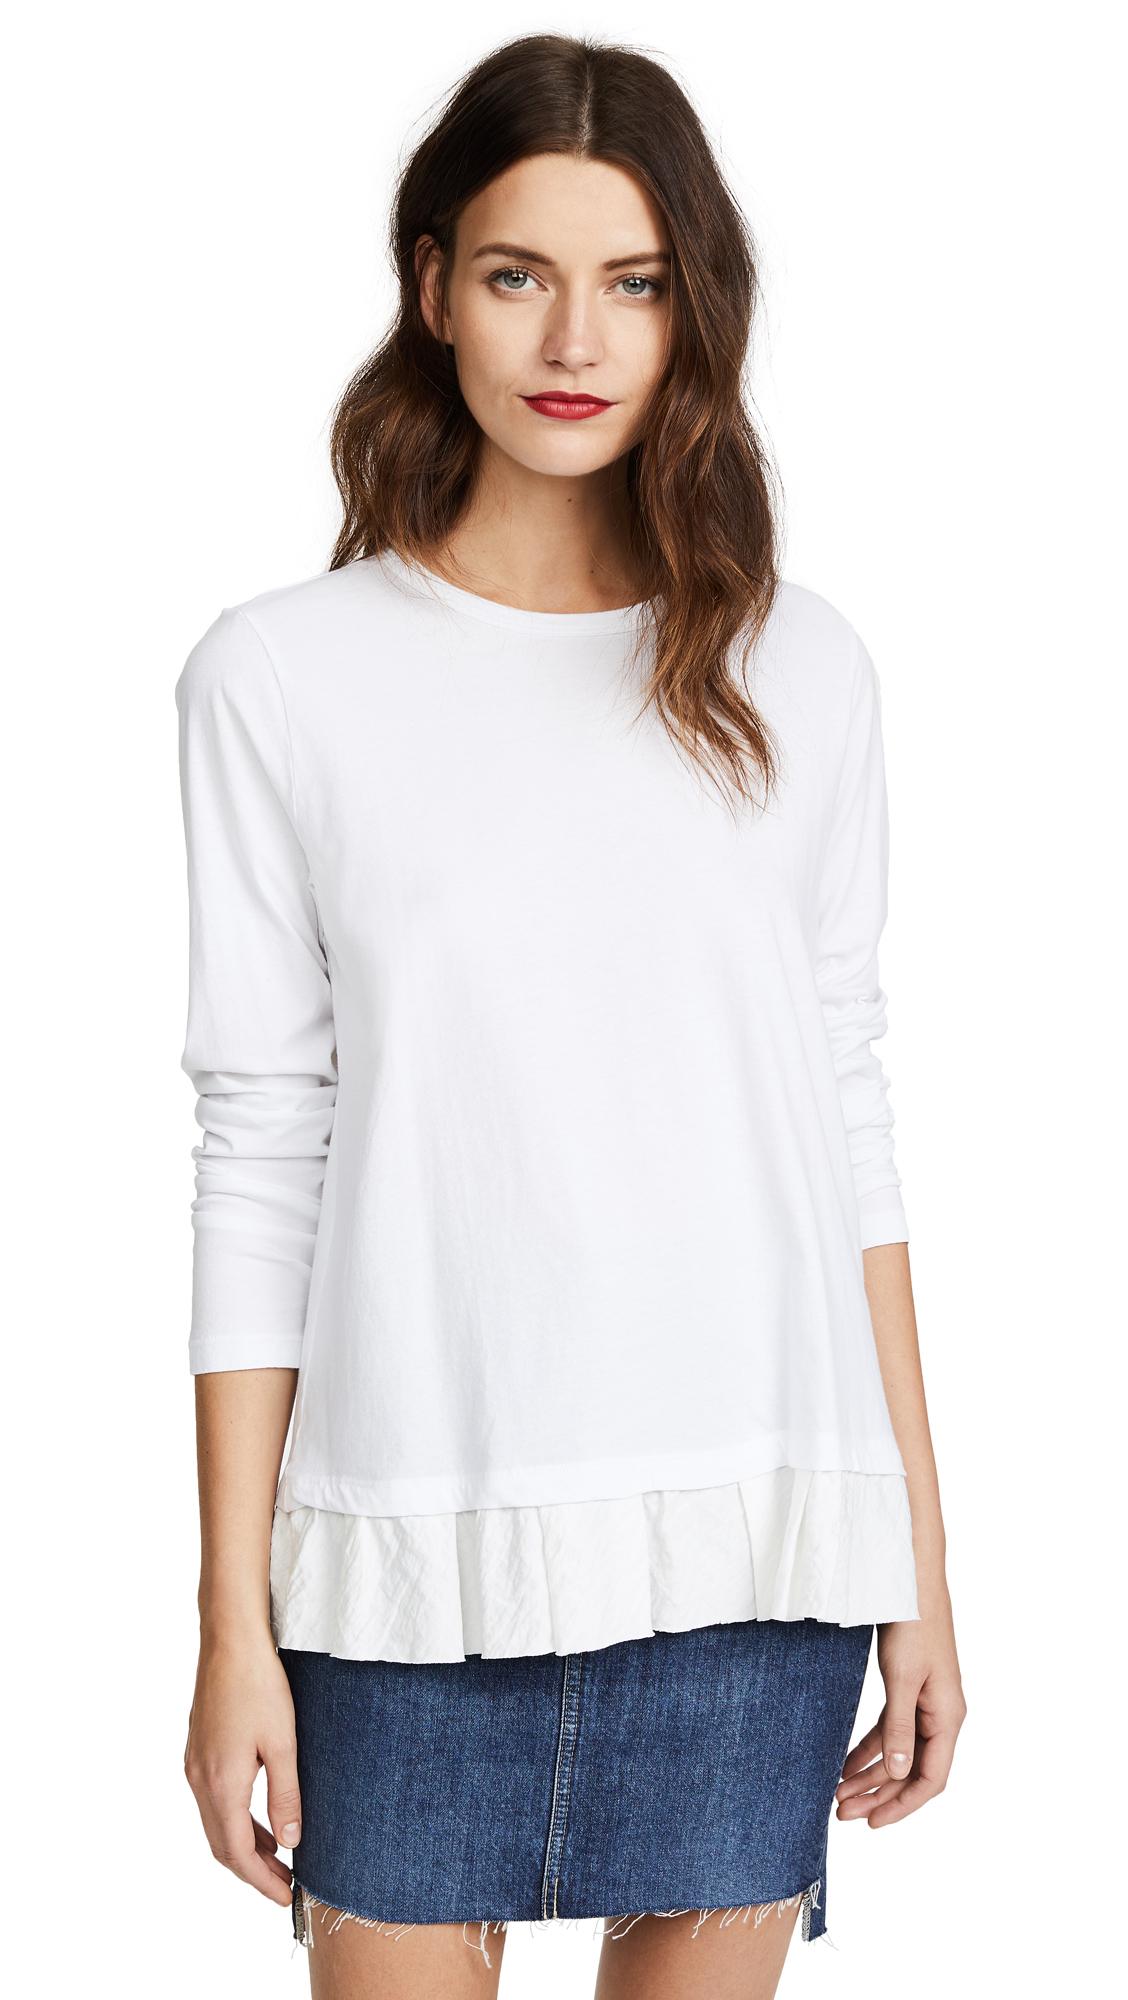 Clu Clu Too Ruffled Top In White/White